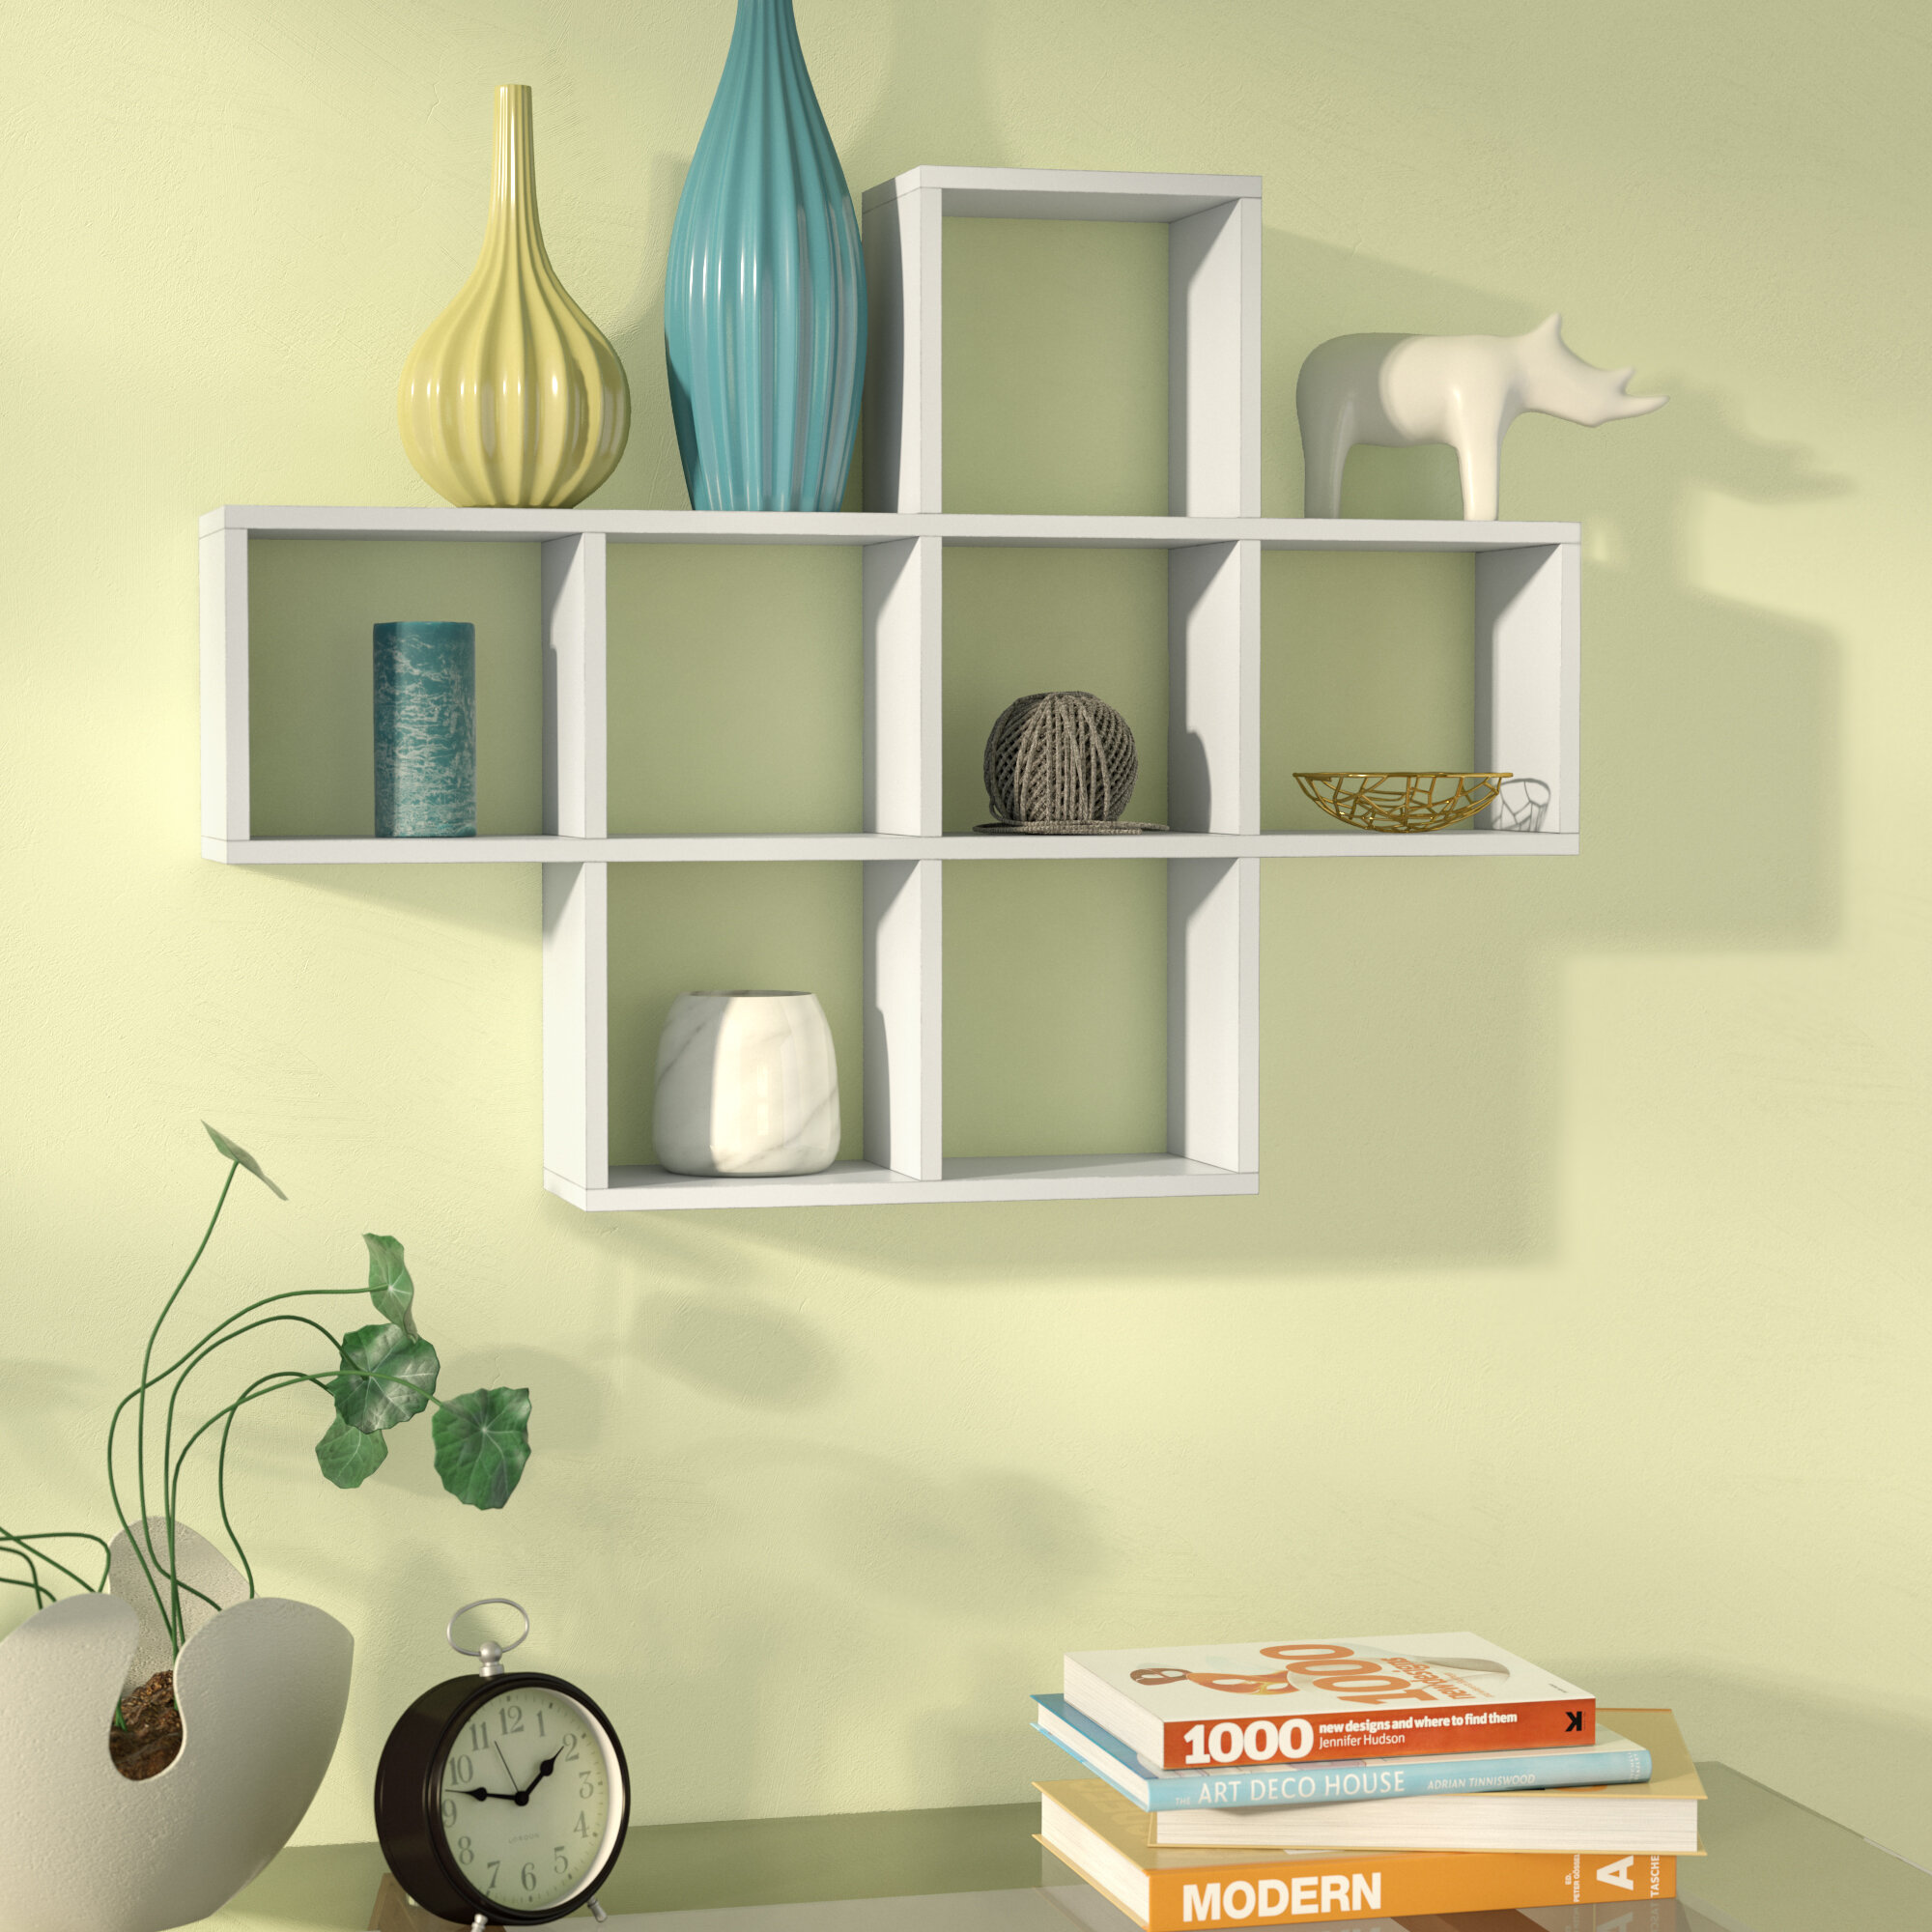 espresso cubby stuff tetris plus kitchen bookshelf ksp shelf